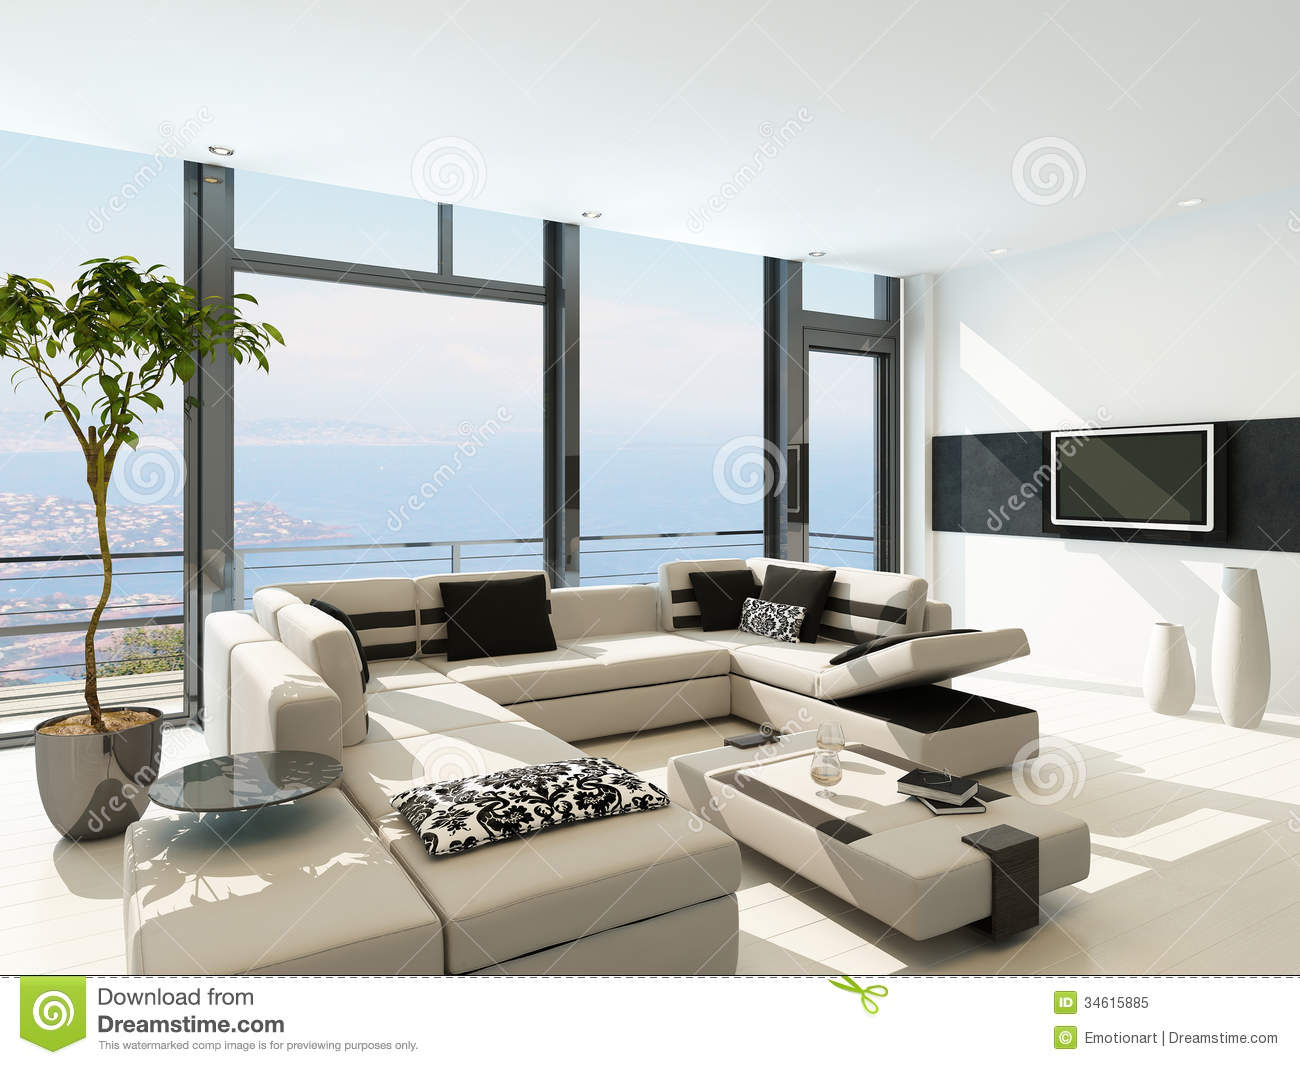 Modern white living room interior with splendid seascape for Villa de luxe moderne interieur chambre